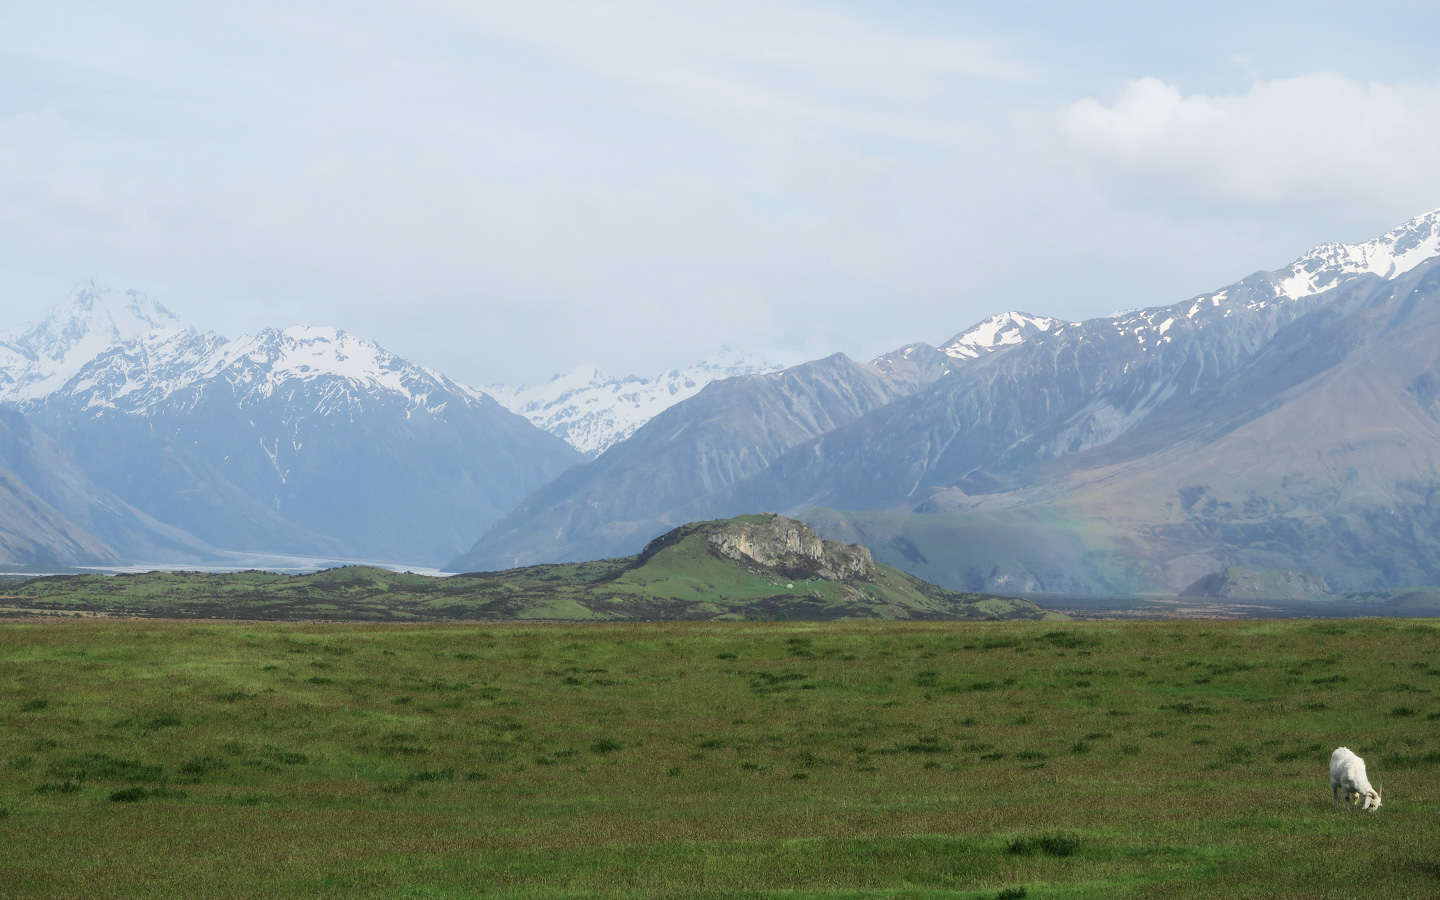 mount sunday used for the film location of edoras in lord of the rings